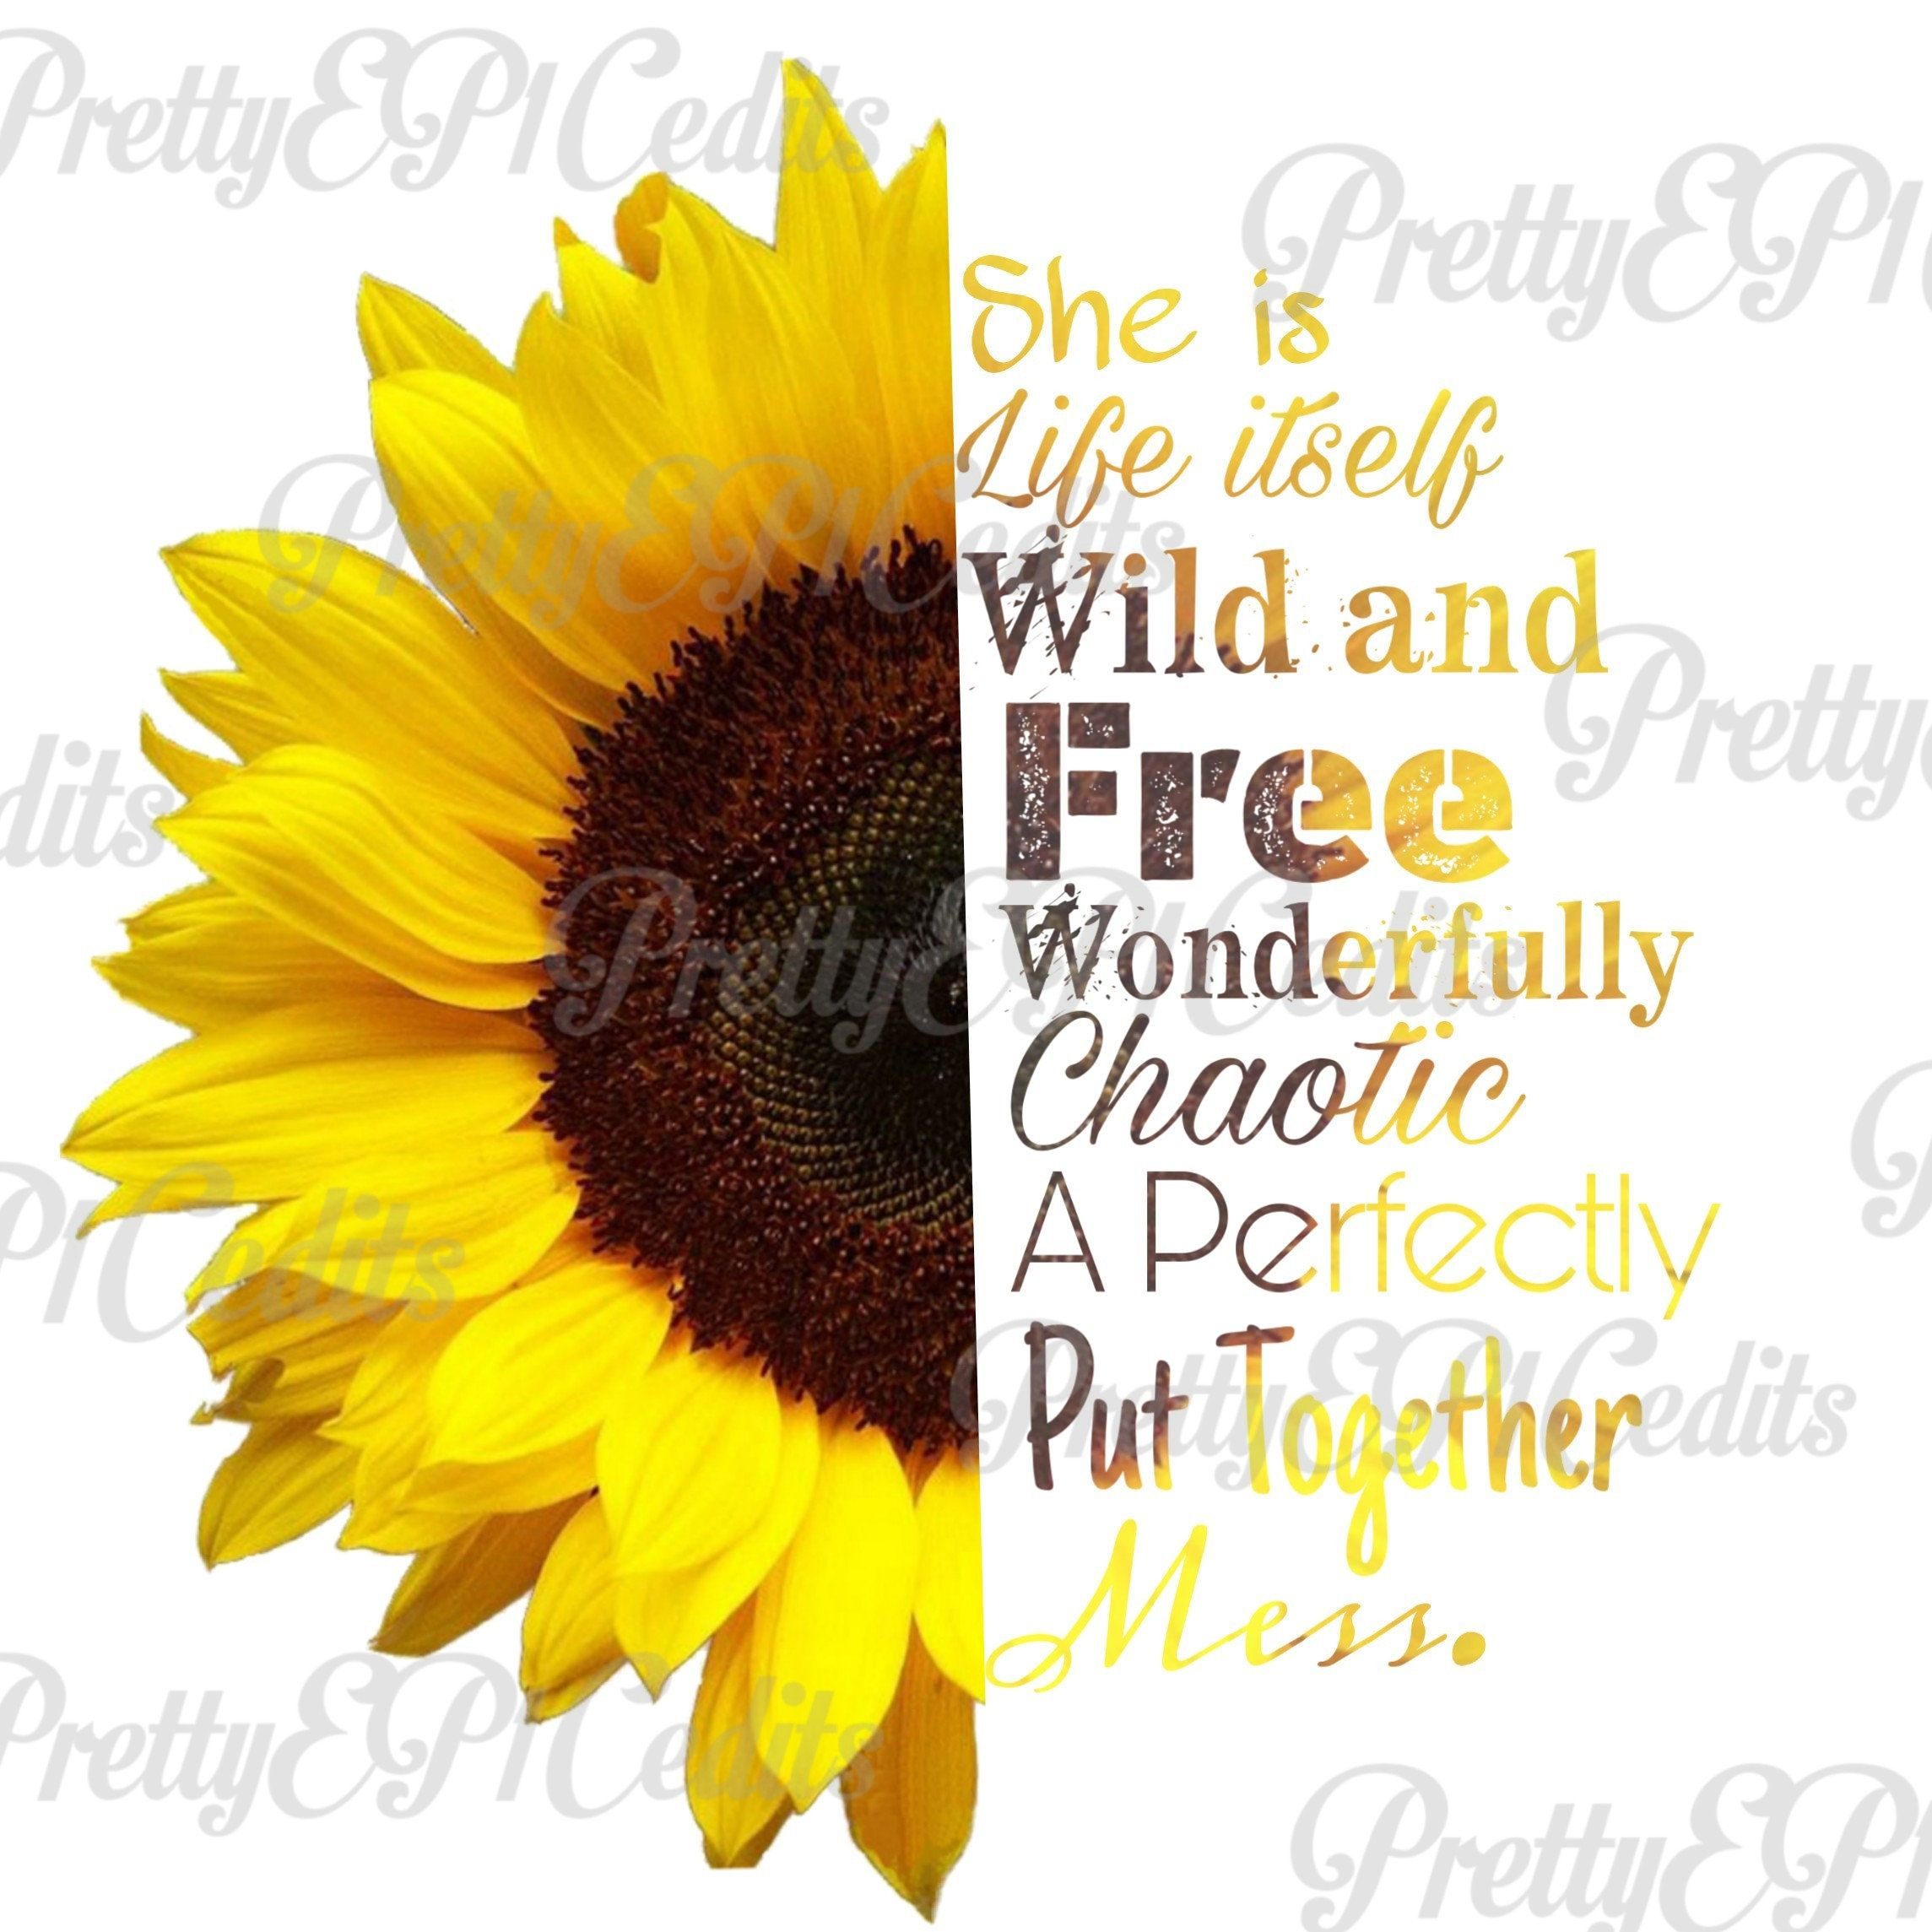 Sunflower Quote Half Sunflower Printable Digital Image Wild And Free Png Jpg By Prettyep1cedits On Etsy Sunflower Quotes Sunflower Flower Quotes